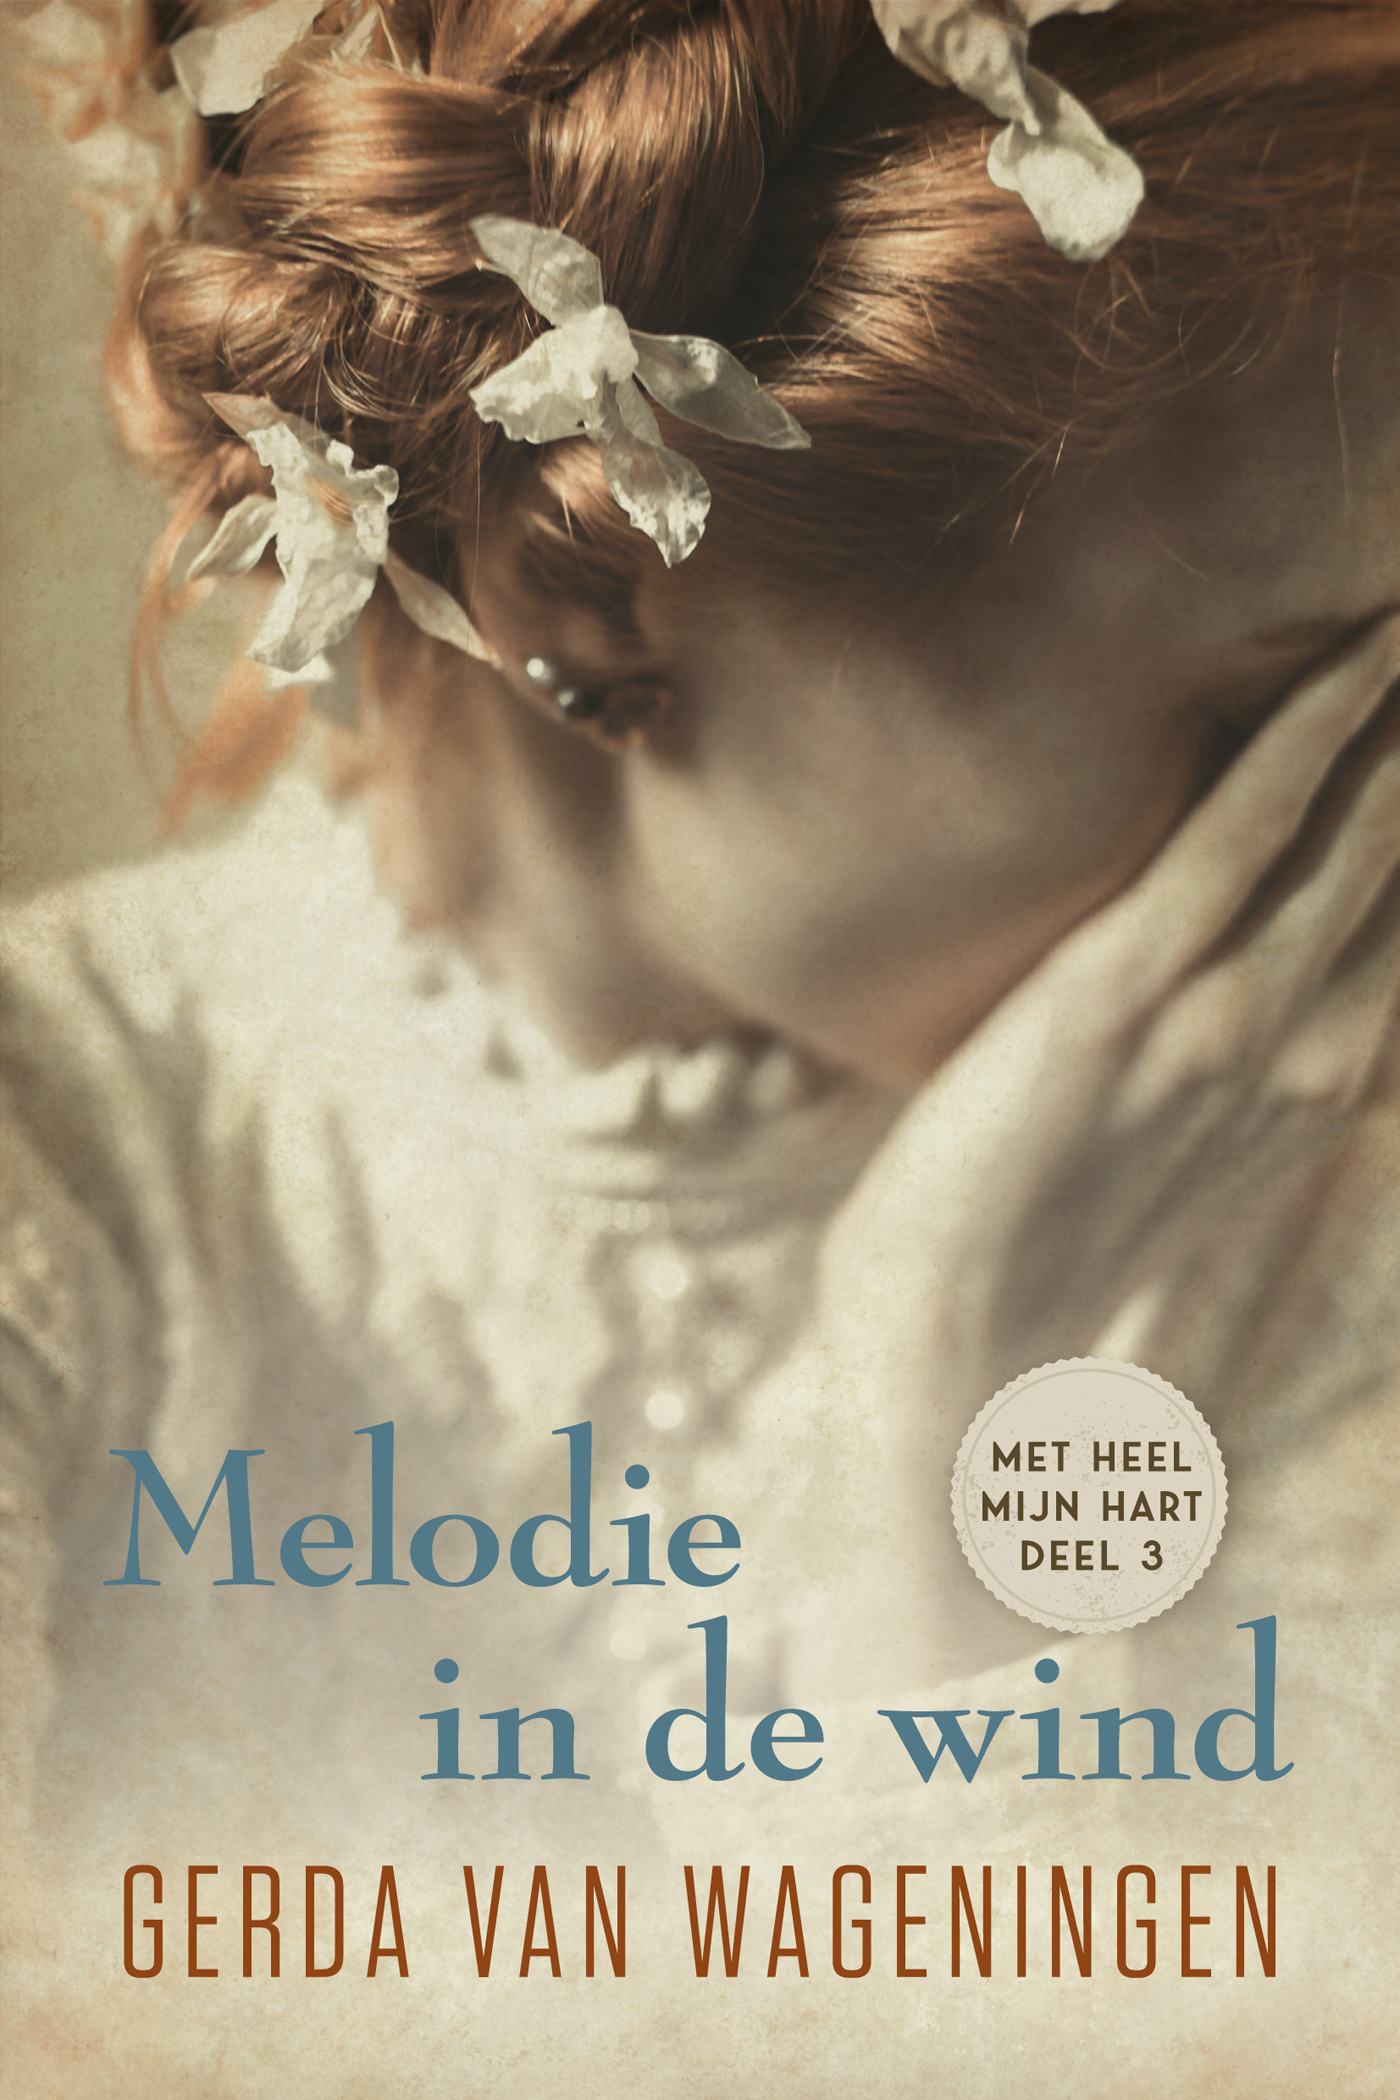 Melodie in de wind